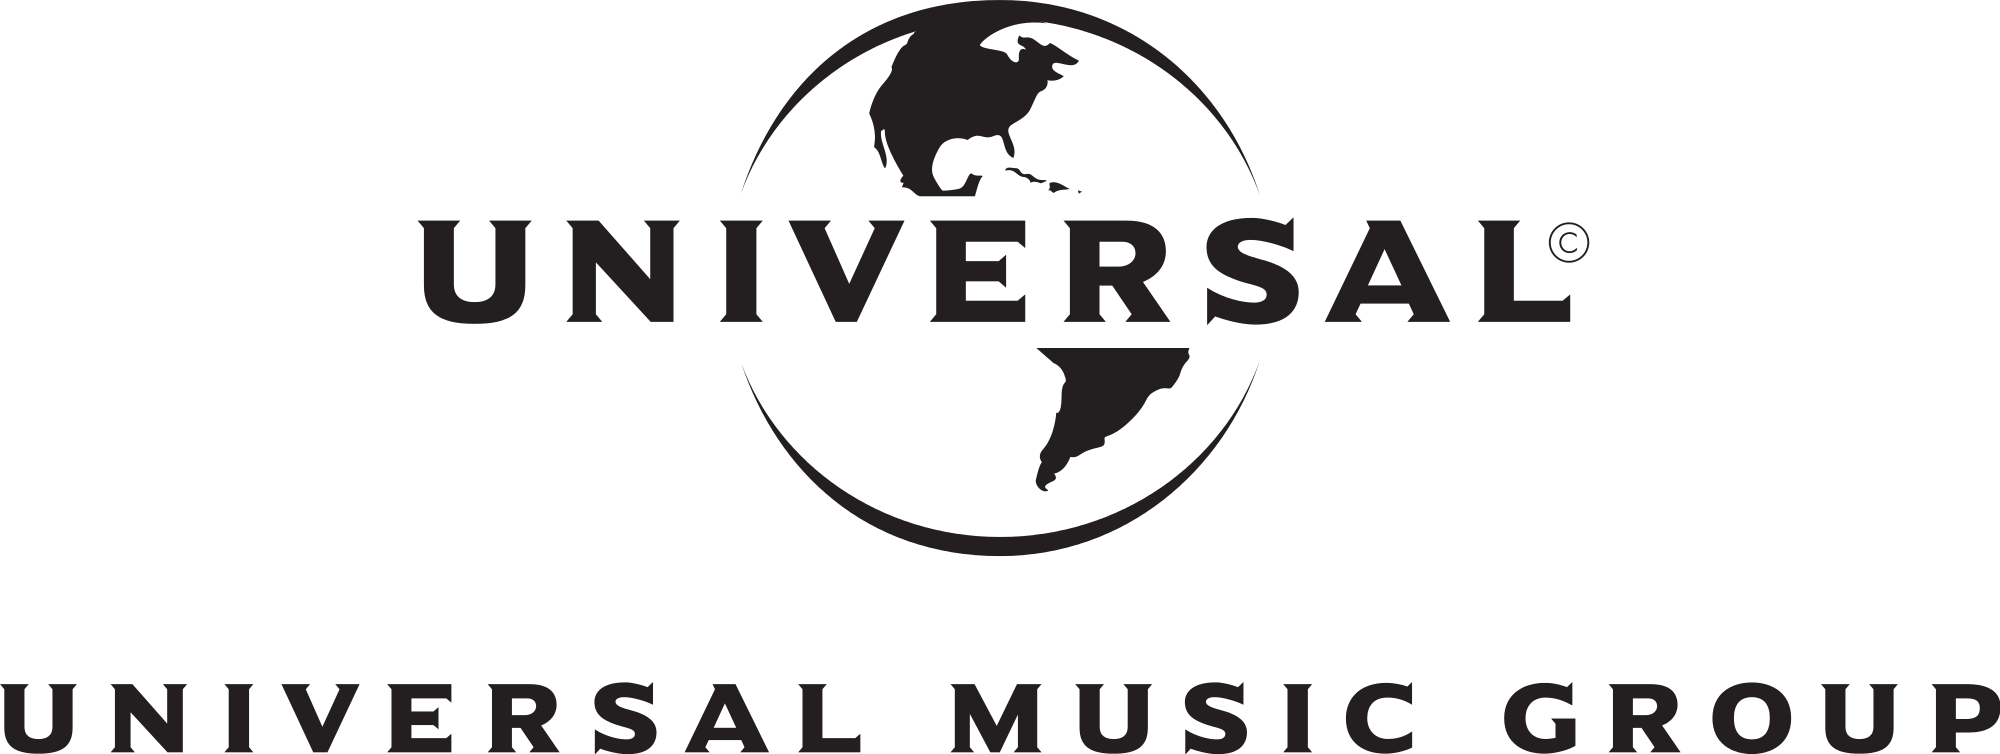 Universal music group logo png. Image px svg logopedia